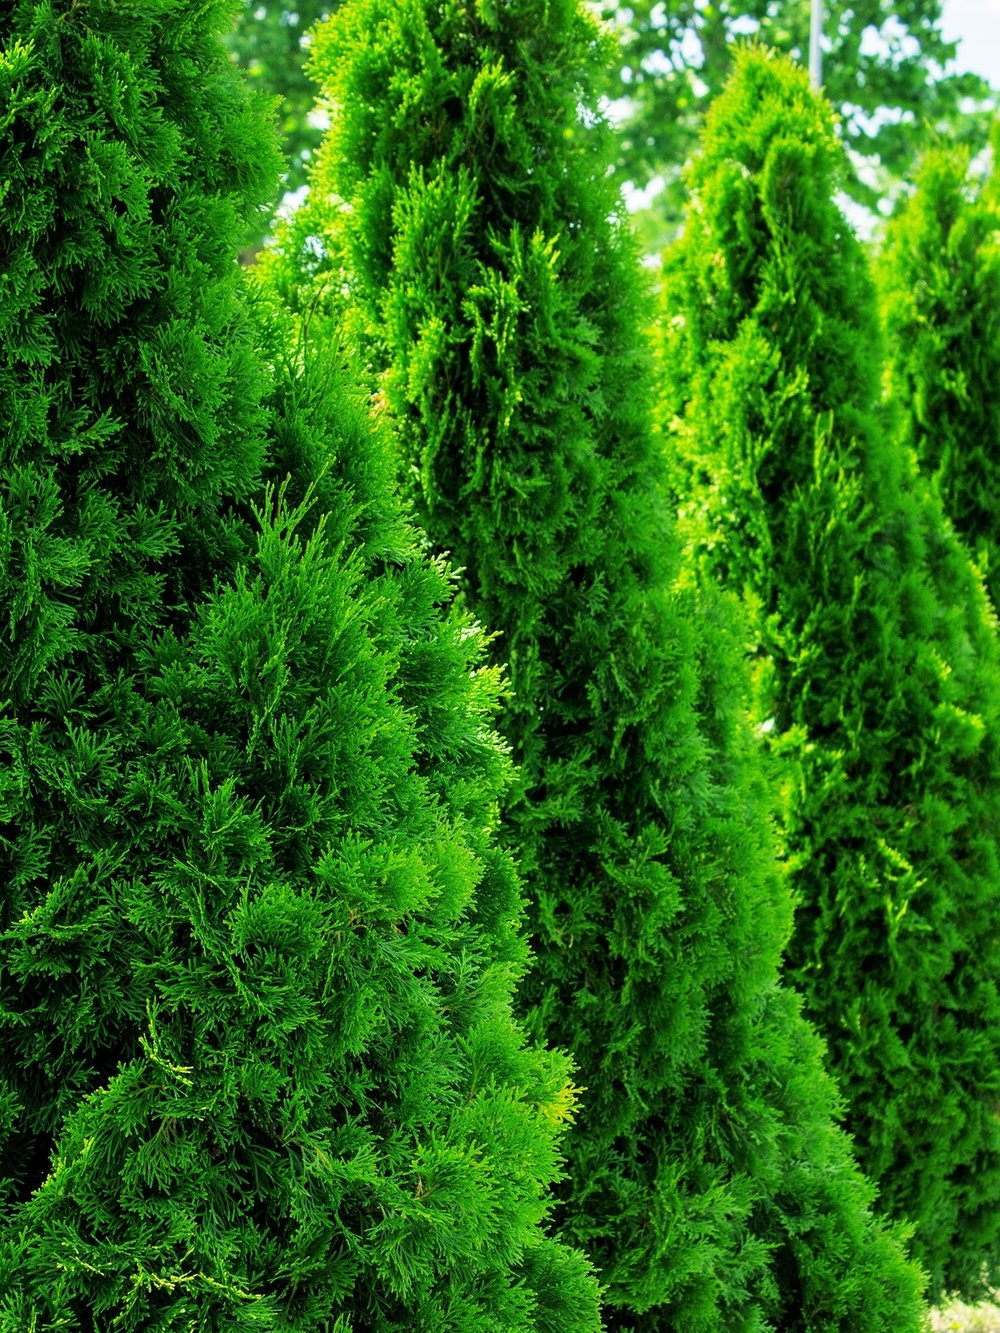 Thuja (aborvitae) - A substitute for Leyland Cypress, many people cannot tell the the Leyland from the 'Green Giant' arborvitae. 'Green Giant' or 'Emerald Green' is a better fit in smaller landscapes.Zone:5-8Size:30'-40' x 15'-20, or more narrow varieties 10'-12' x 3'Cultivars suggested: 'Green Giant', 'Emerald Green', 'Yellow Ribbon'Culture: Full sun to part shadeGrowth rate:Medium to FastPests and Disease: No serious issue, sometimes scale or bagworms*'Green Giant' pictured